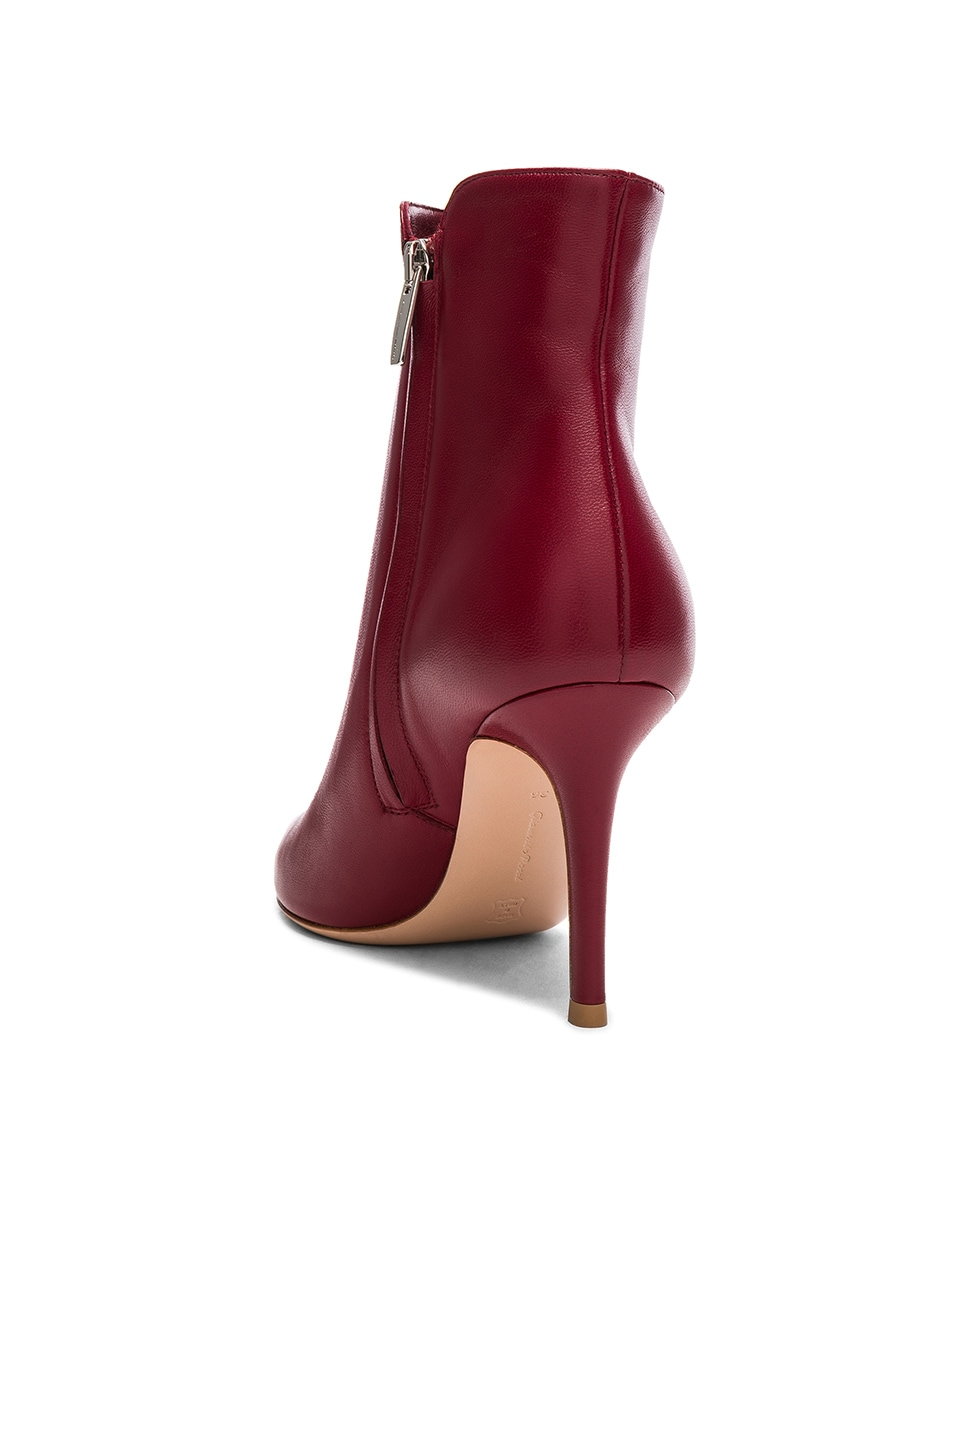 Gianvito Rossi Leather Levy Ankle Boots Syrah on sale